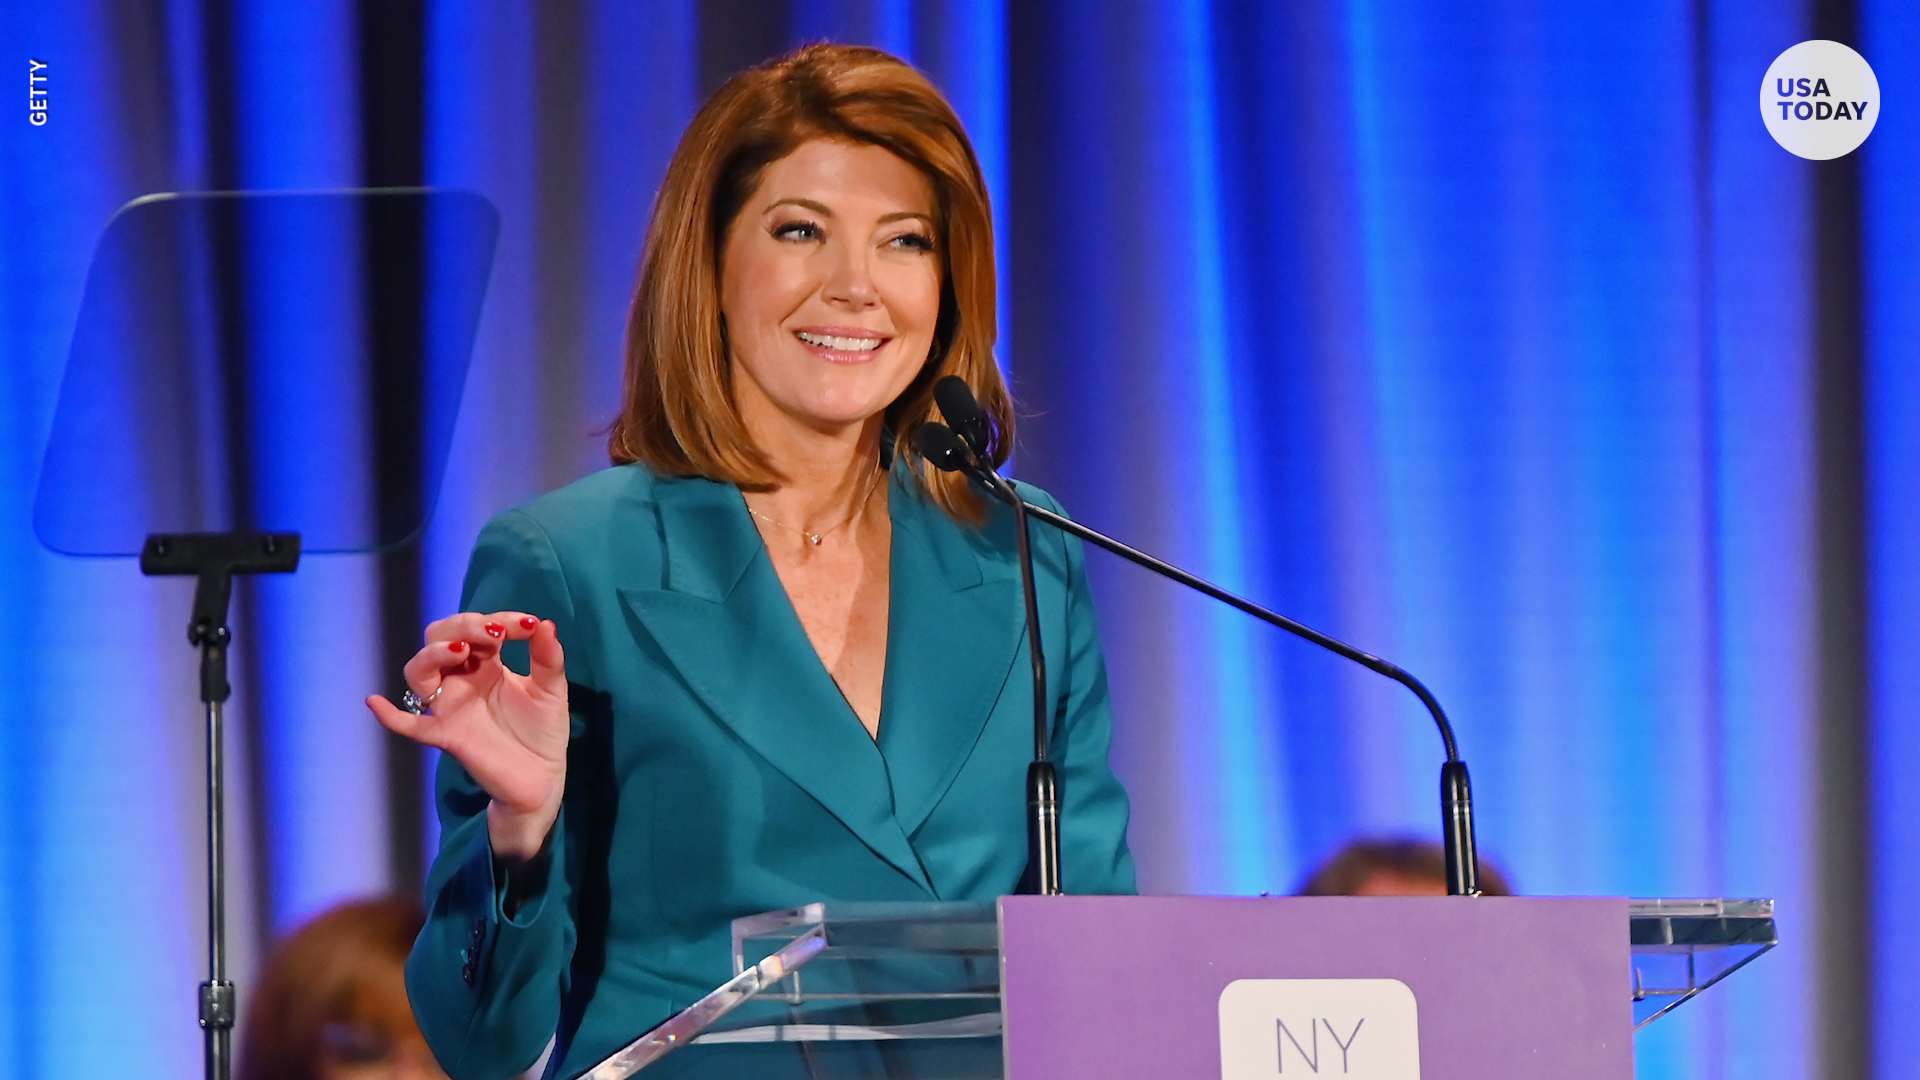 e346ebc5a51 CBS This Morning': Norah O'Donnell says goodbye with tears in her eyes